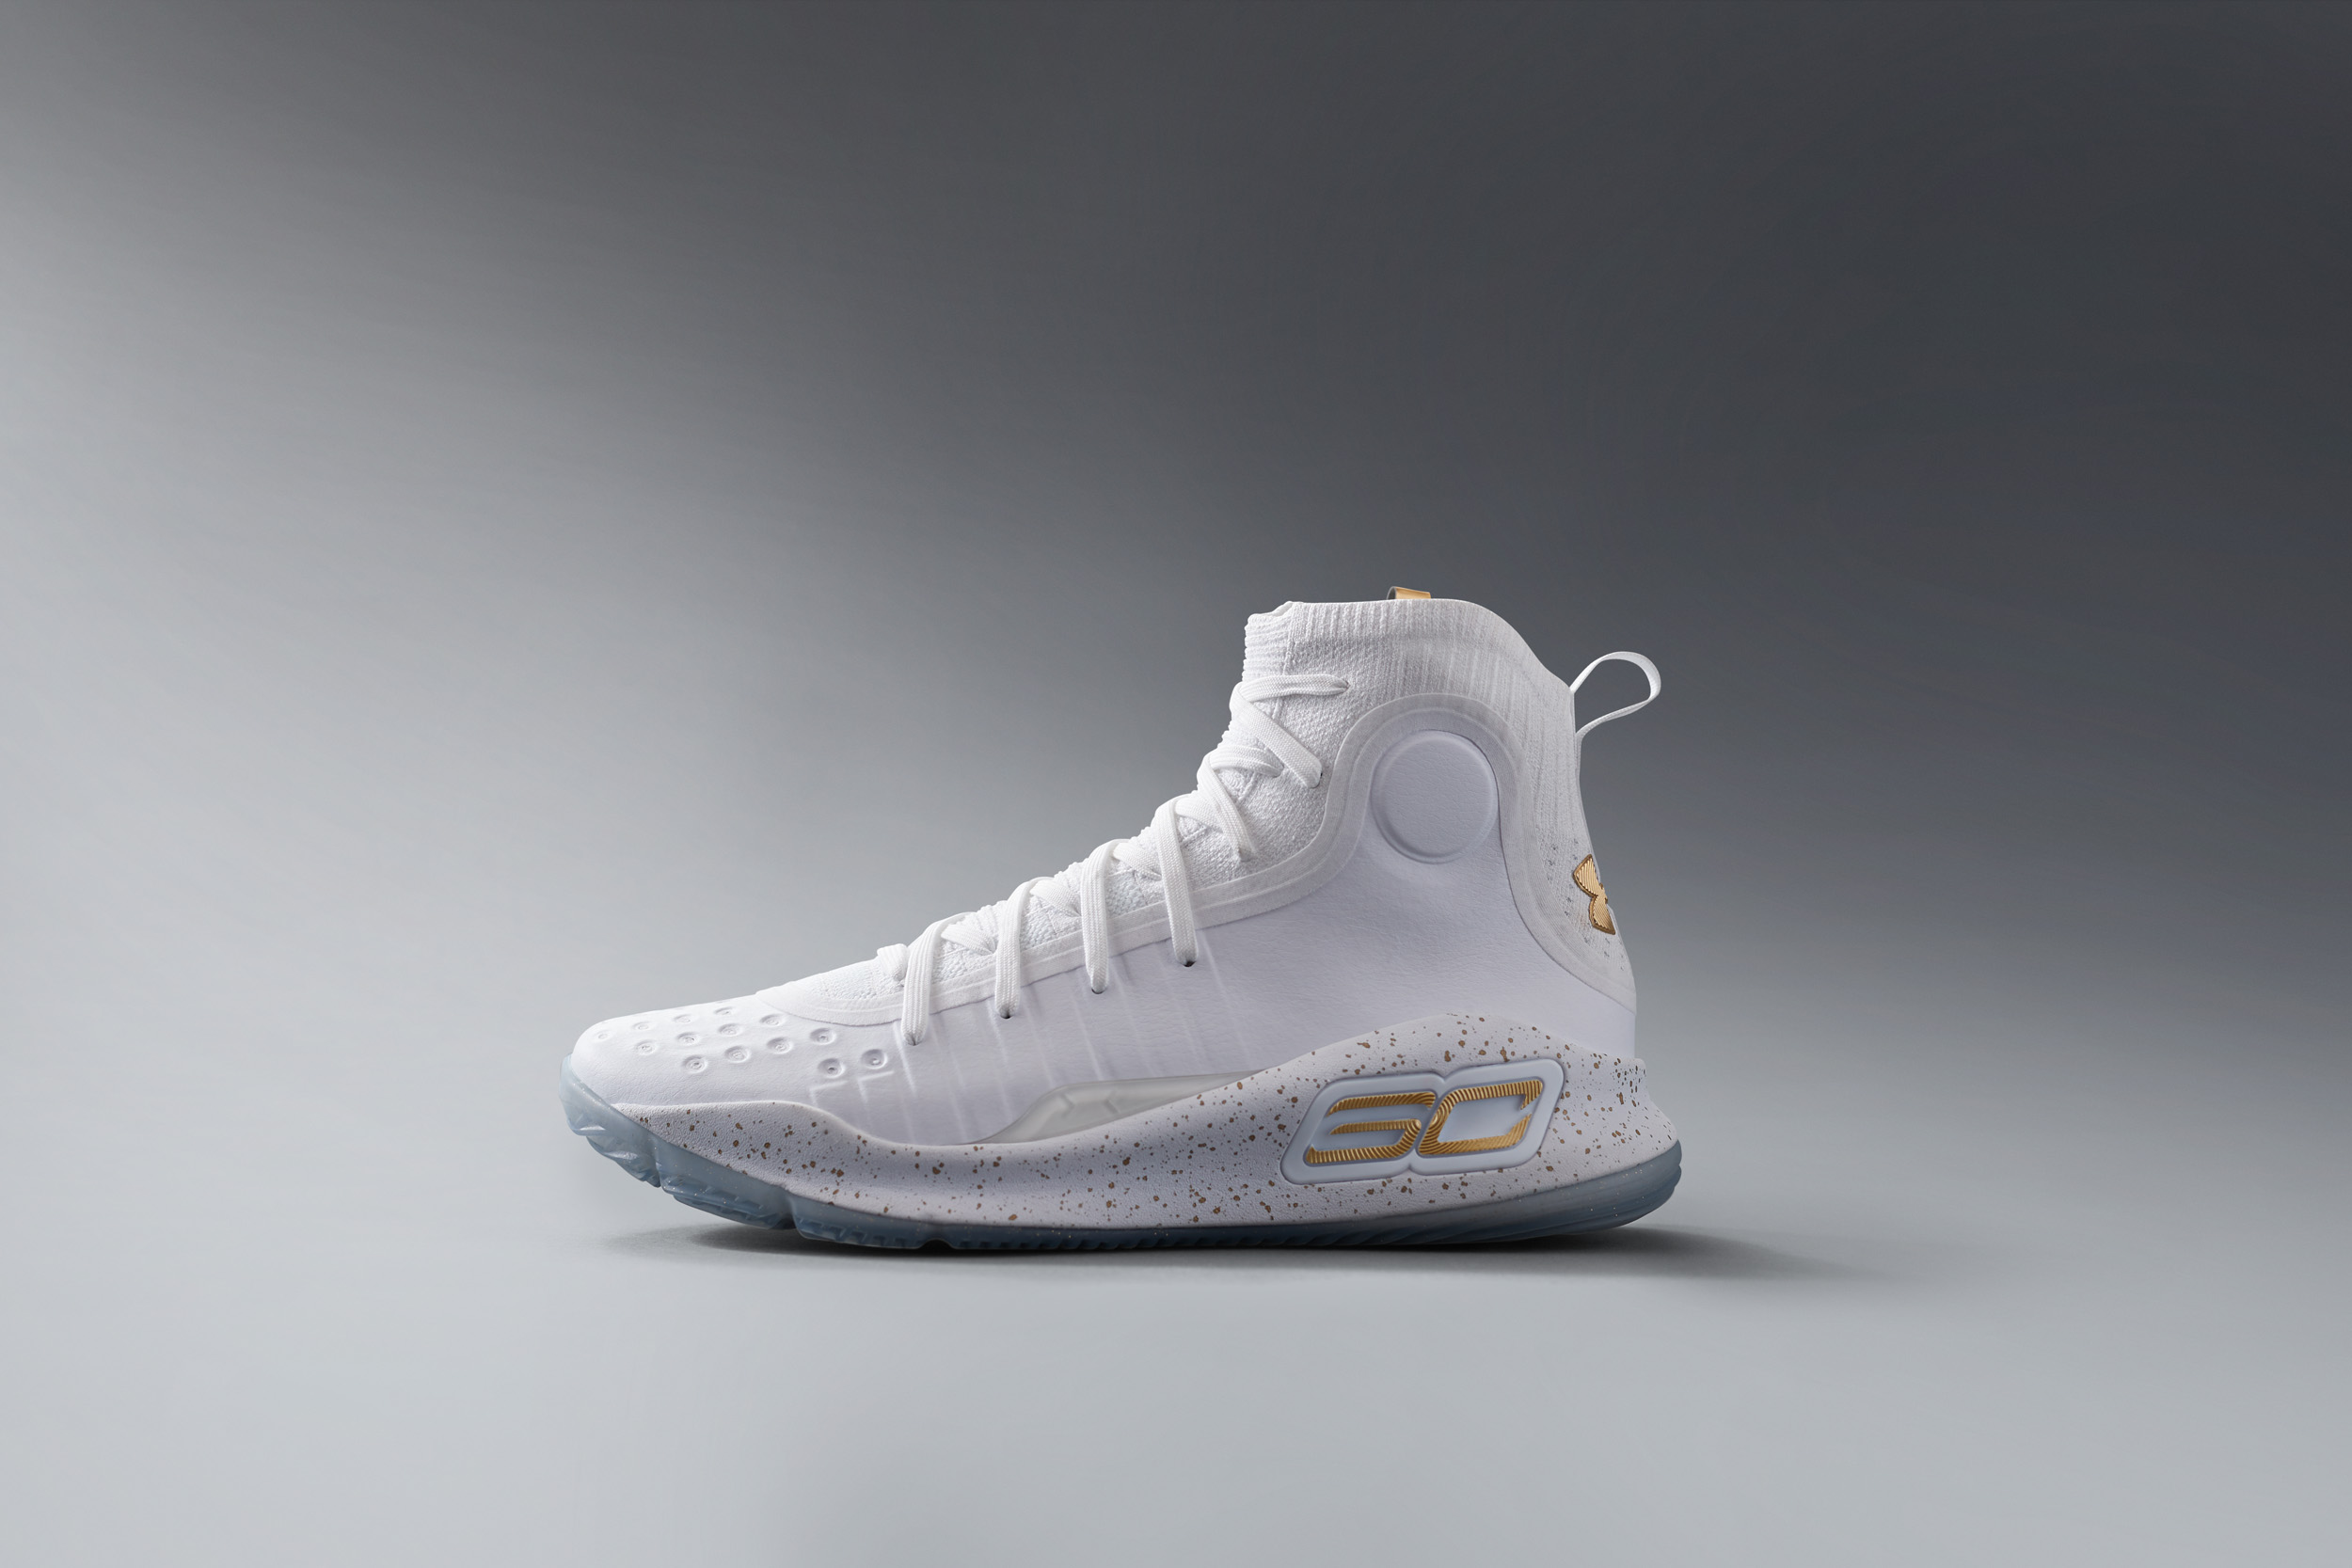 super popular ea494 c9187 The Under Armour Curry 4 White/Gold Drops This Saturday ...